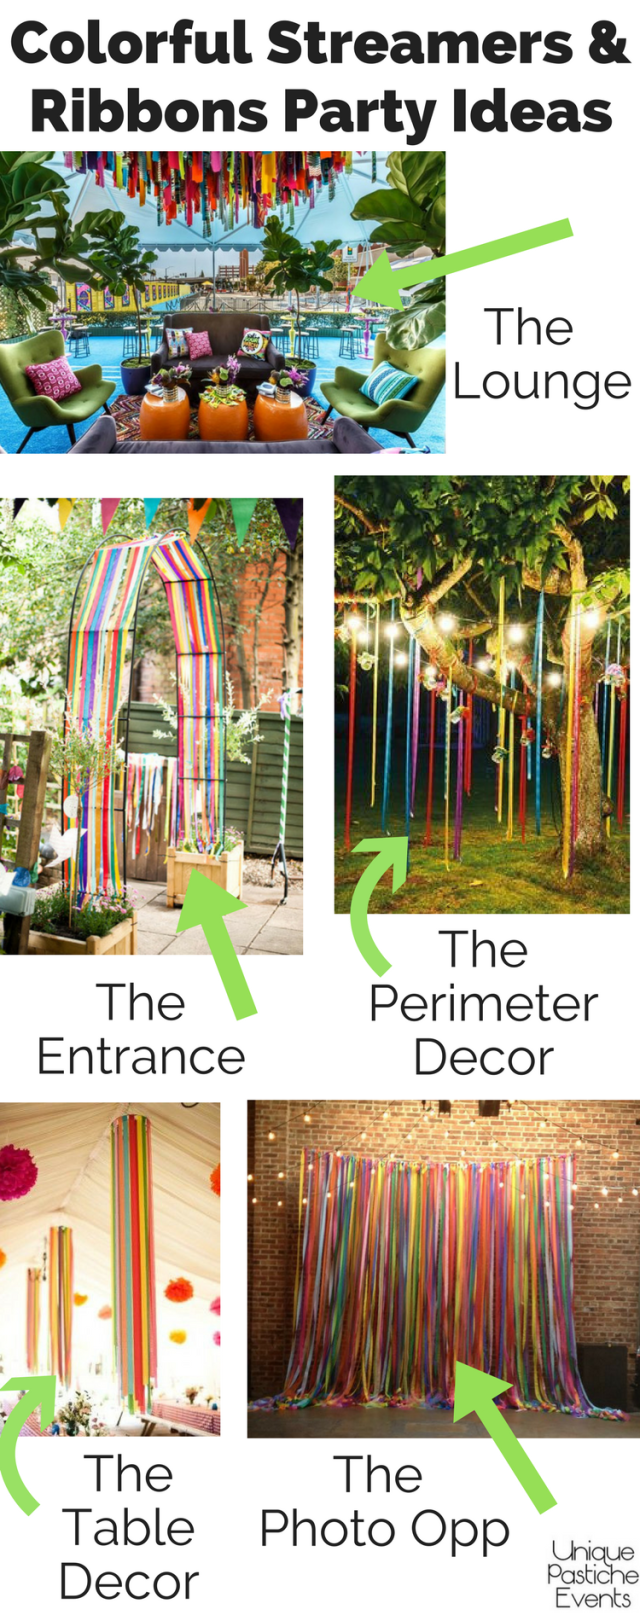 Colorful Streamers and Ribbons Party Ideas